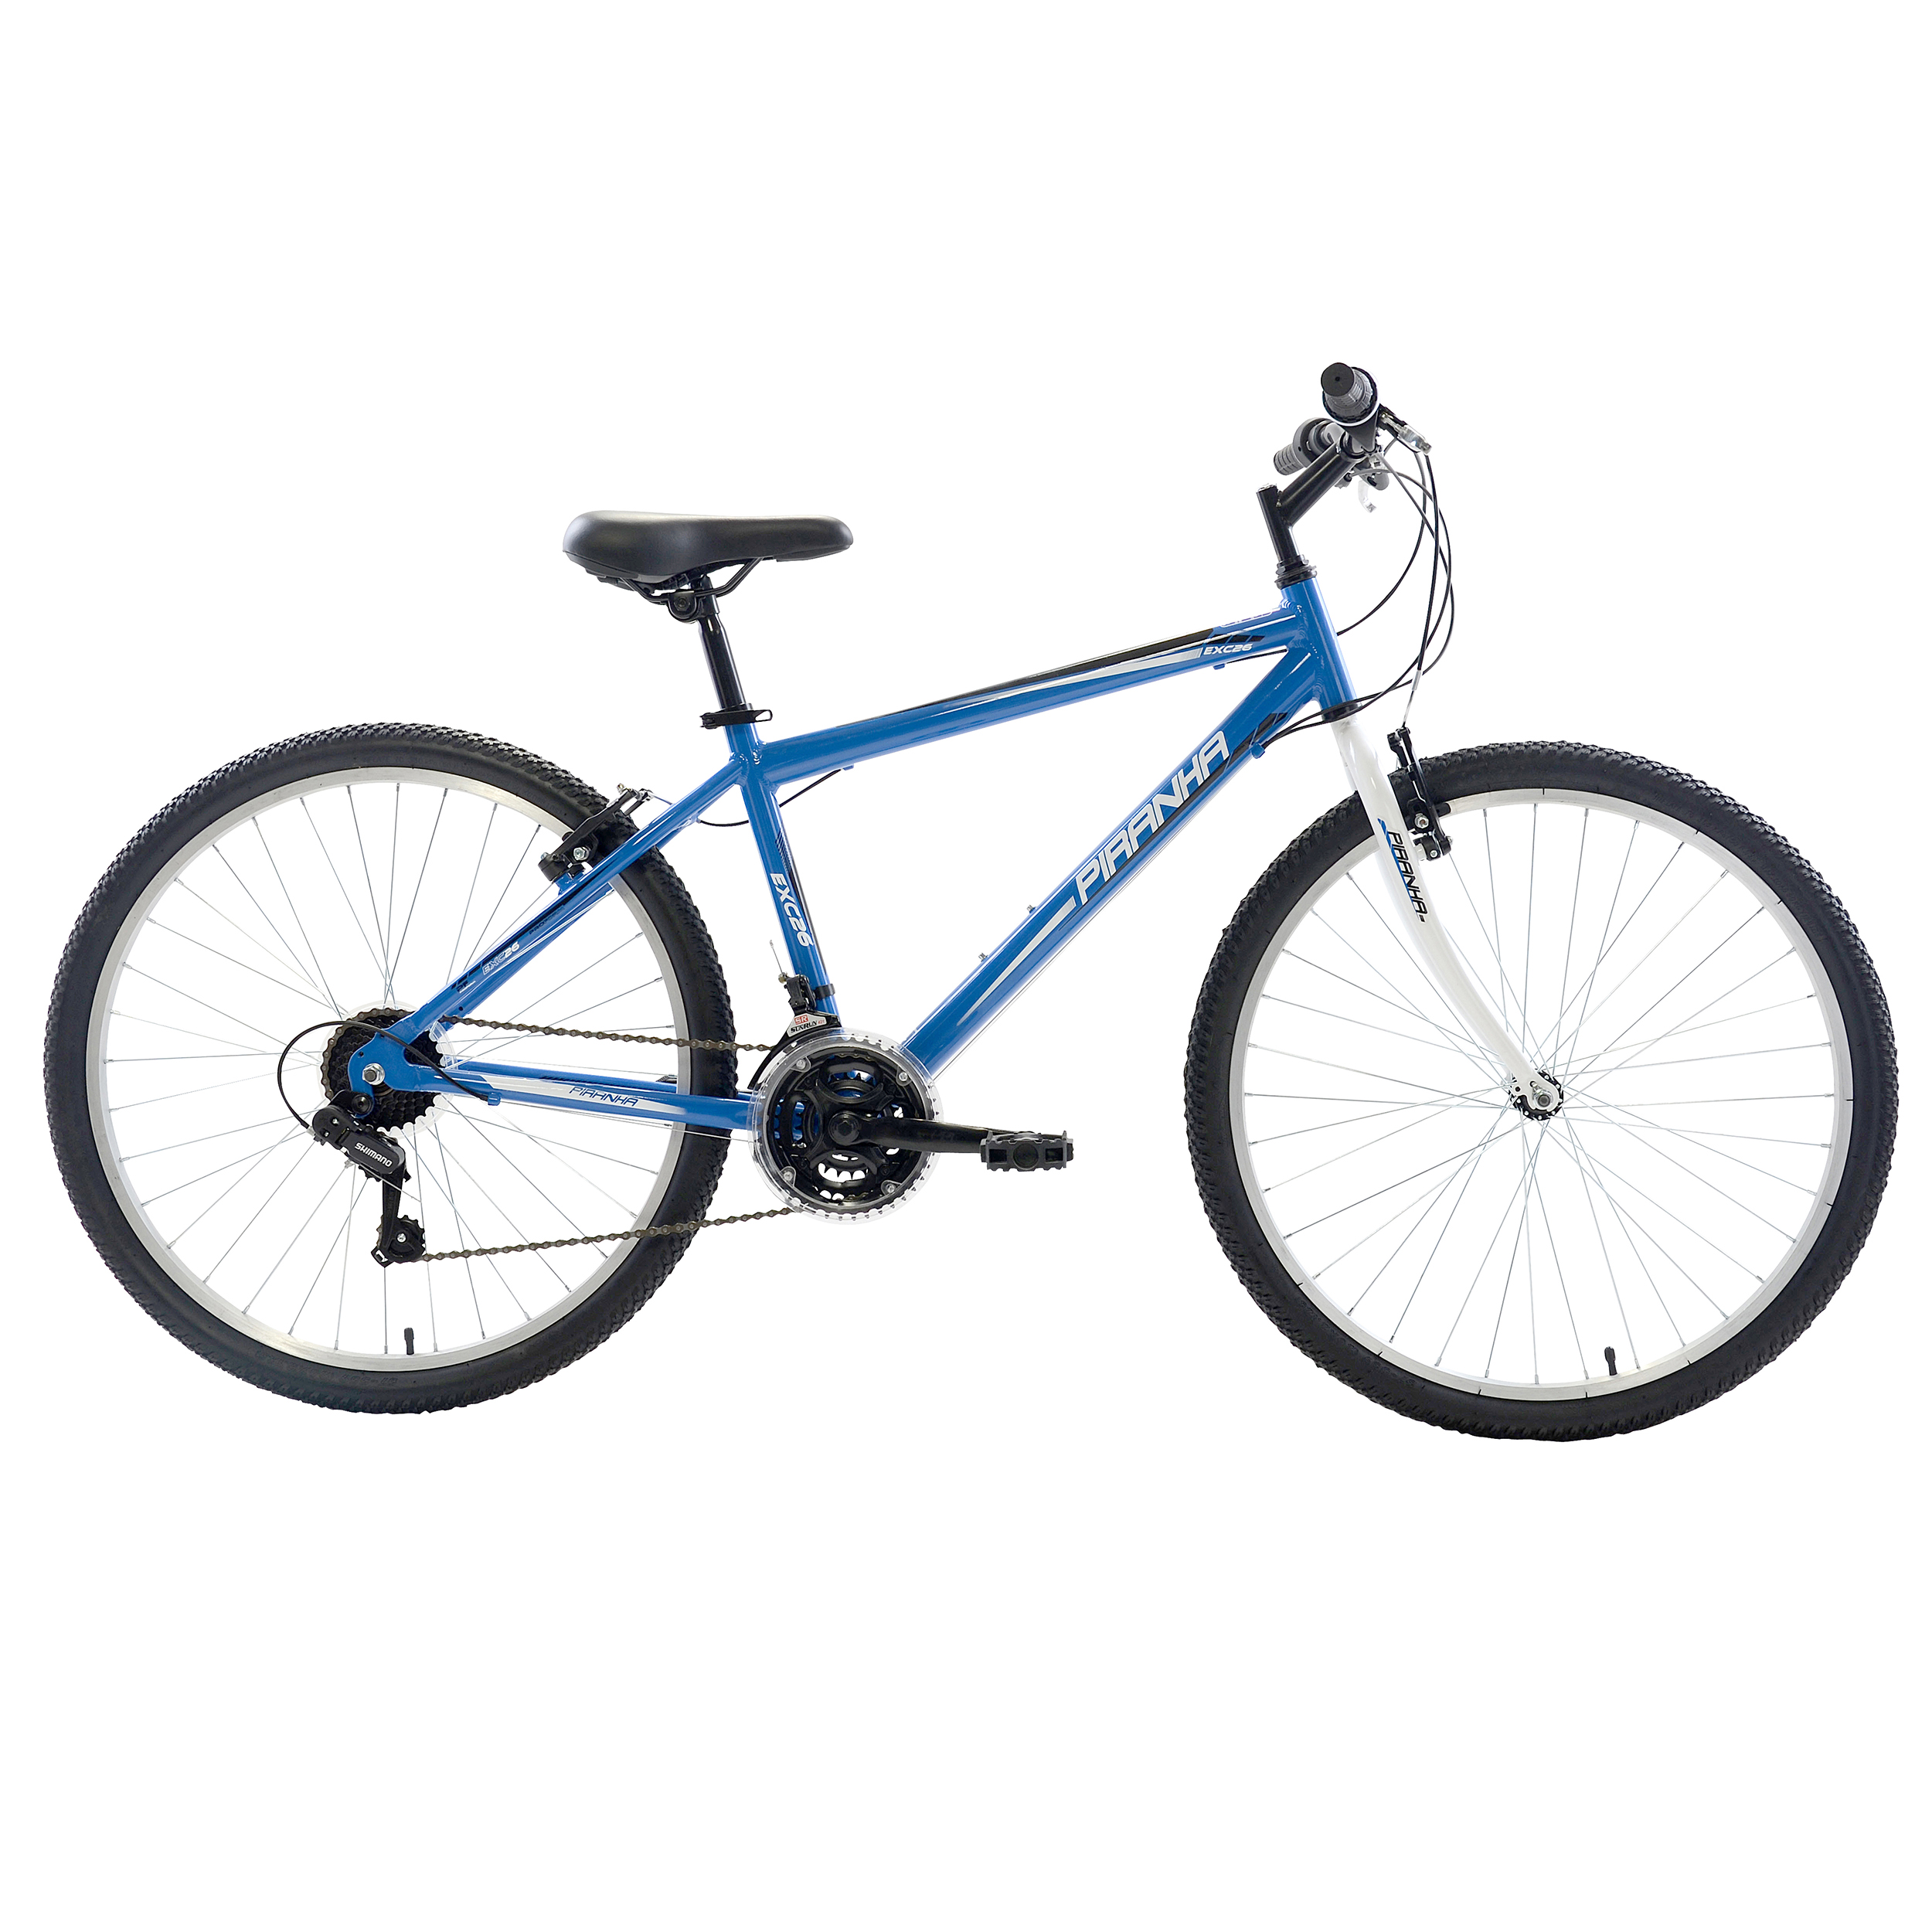 Piranha 21 Speed Rigid MTB - 26 inch wheels - 18 inch frame - Men's Bike